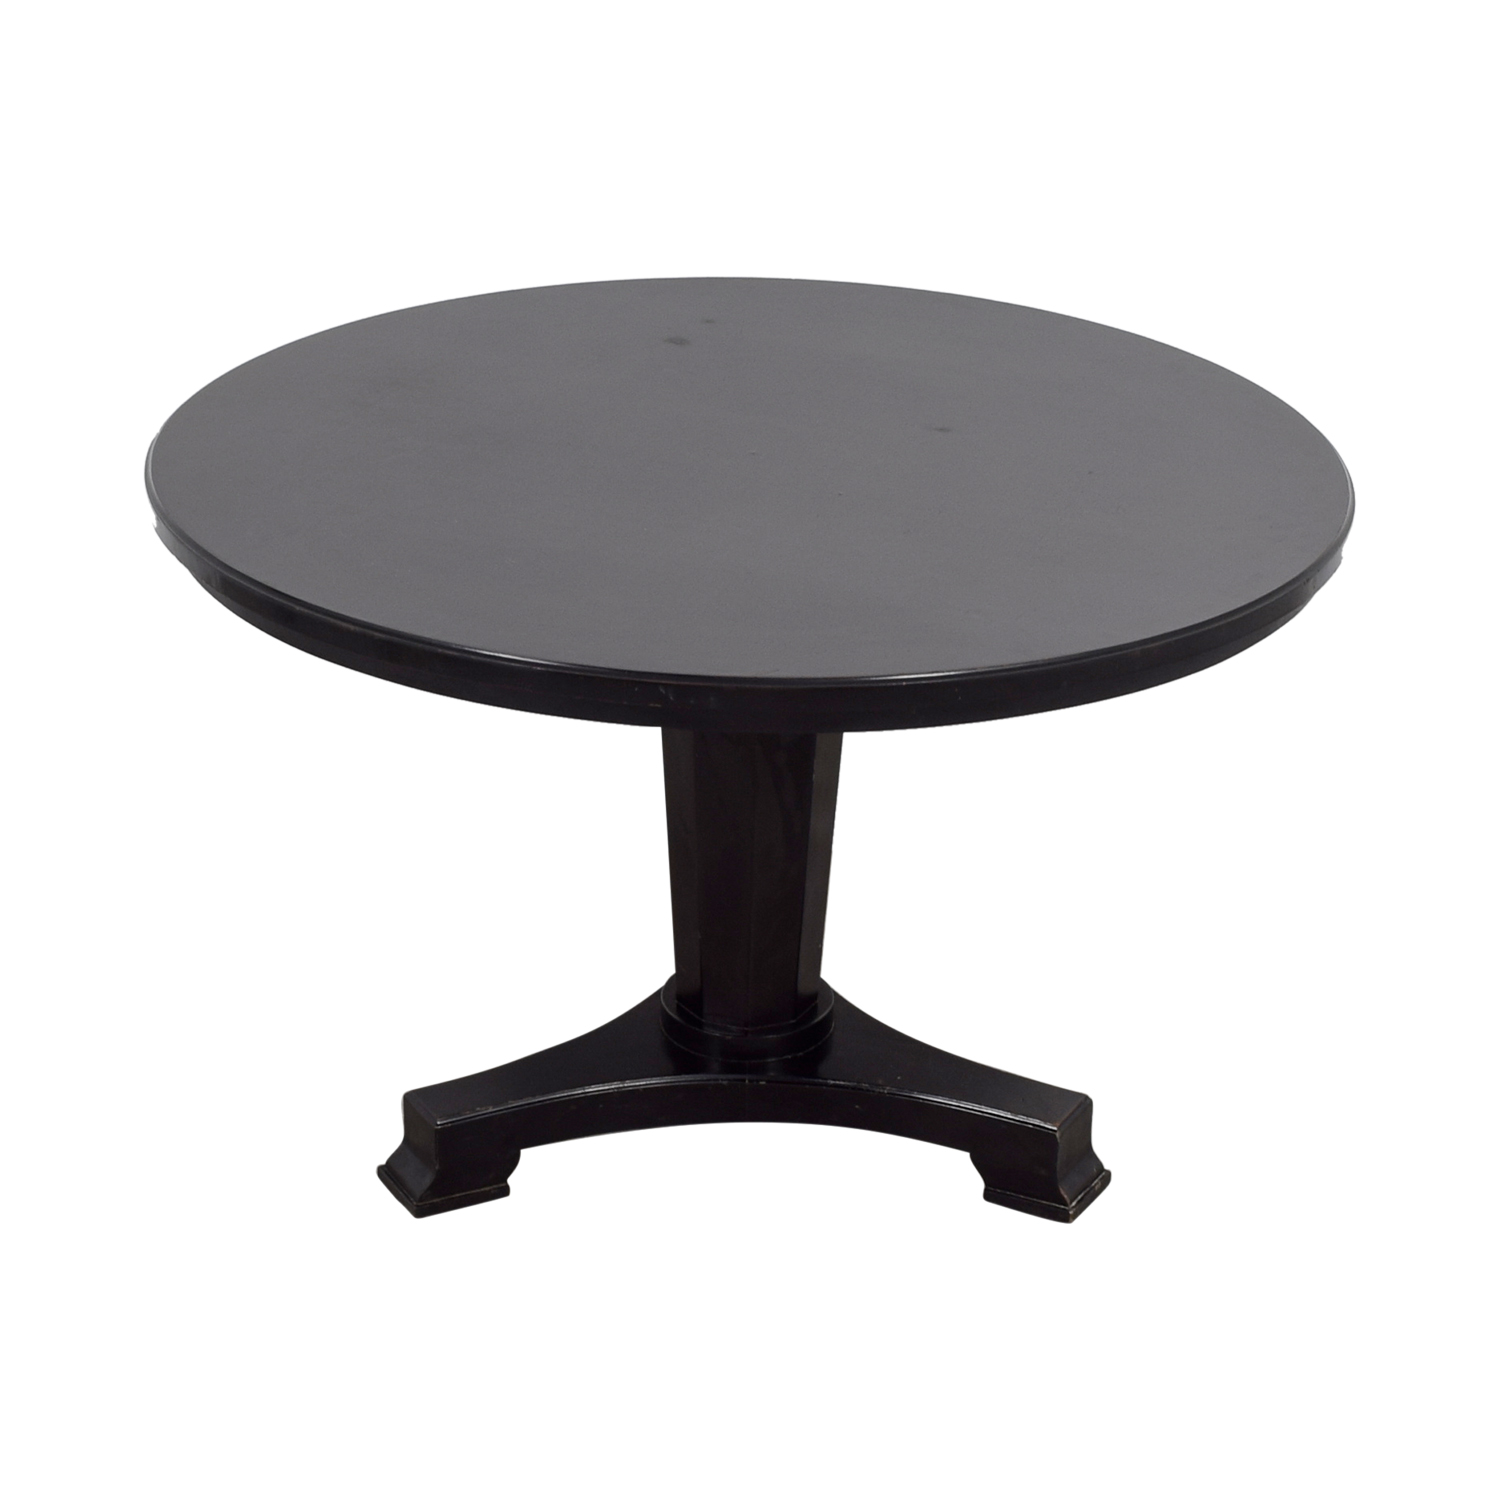 Oly Atelier Round Black Table sale